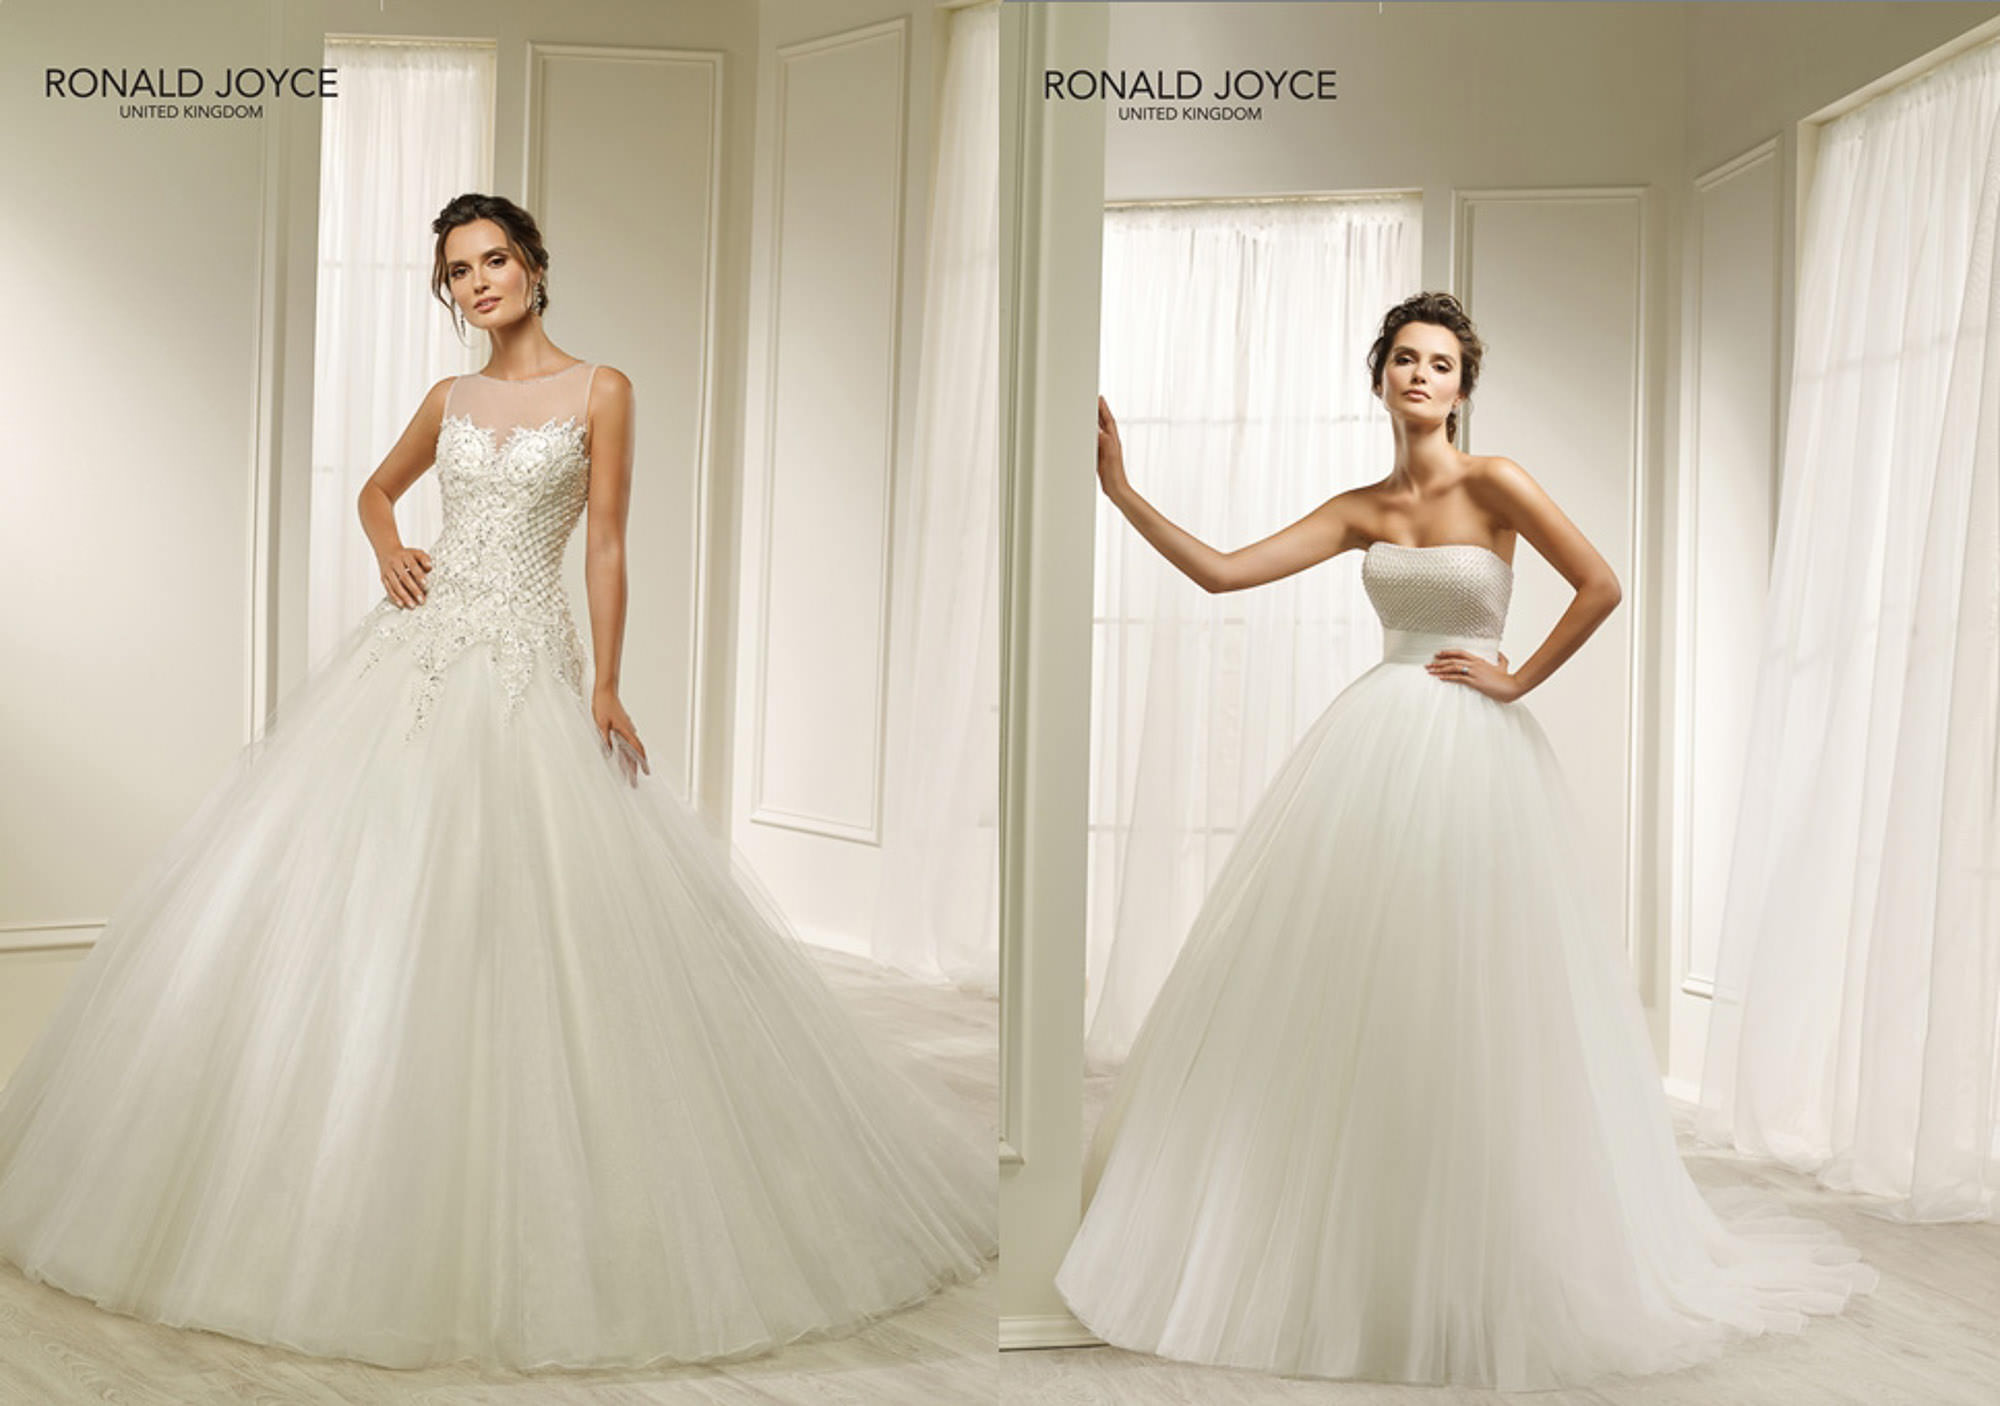 Advise the original outfits for the bride and groom, I want something non-standard 28